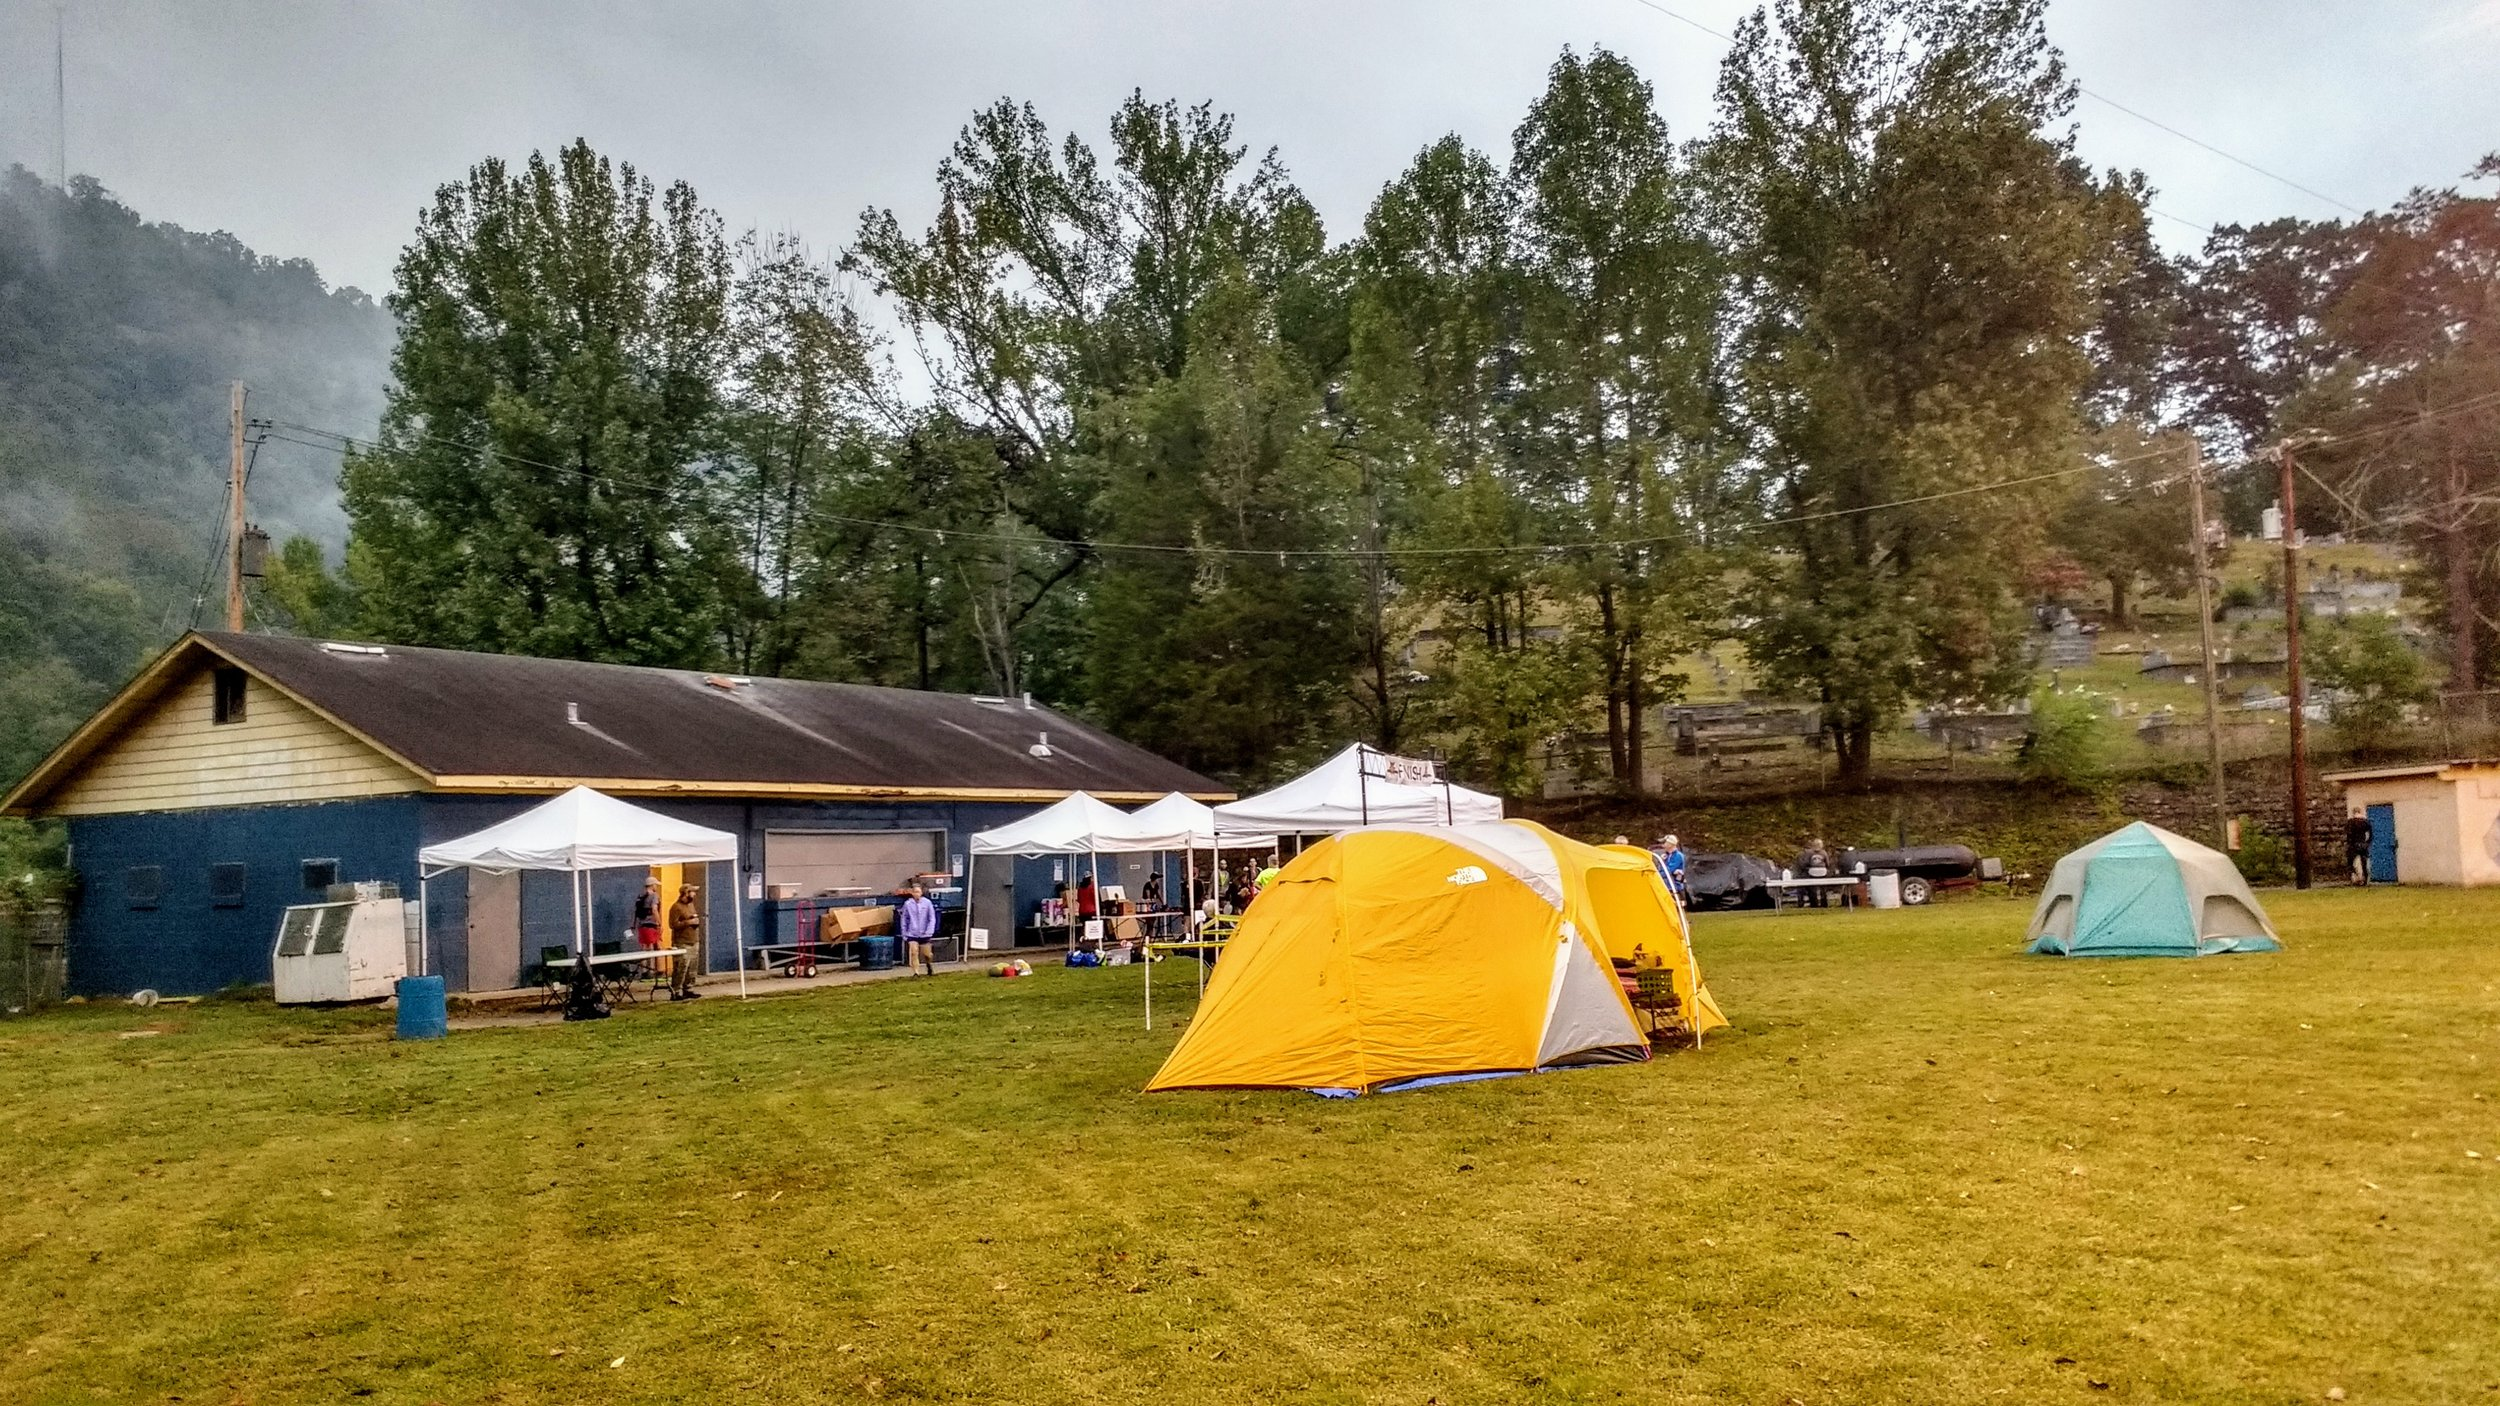 Camping before the start of Cloudsplitter 100